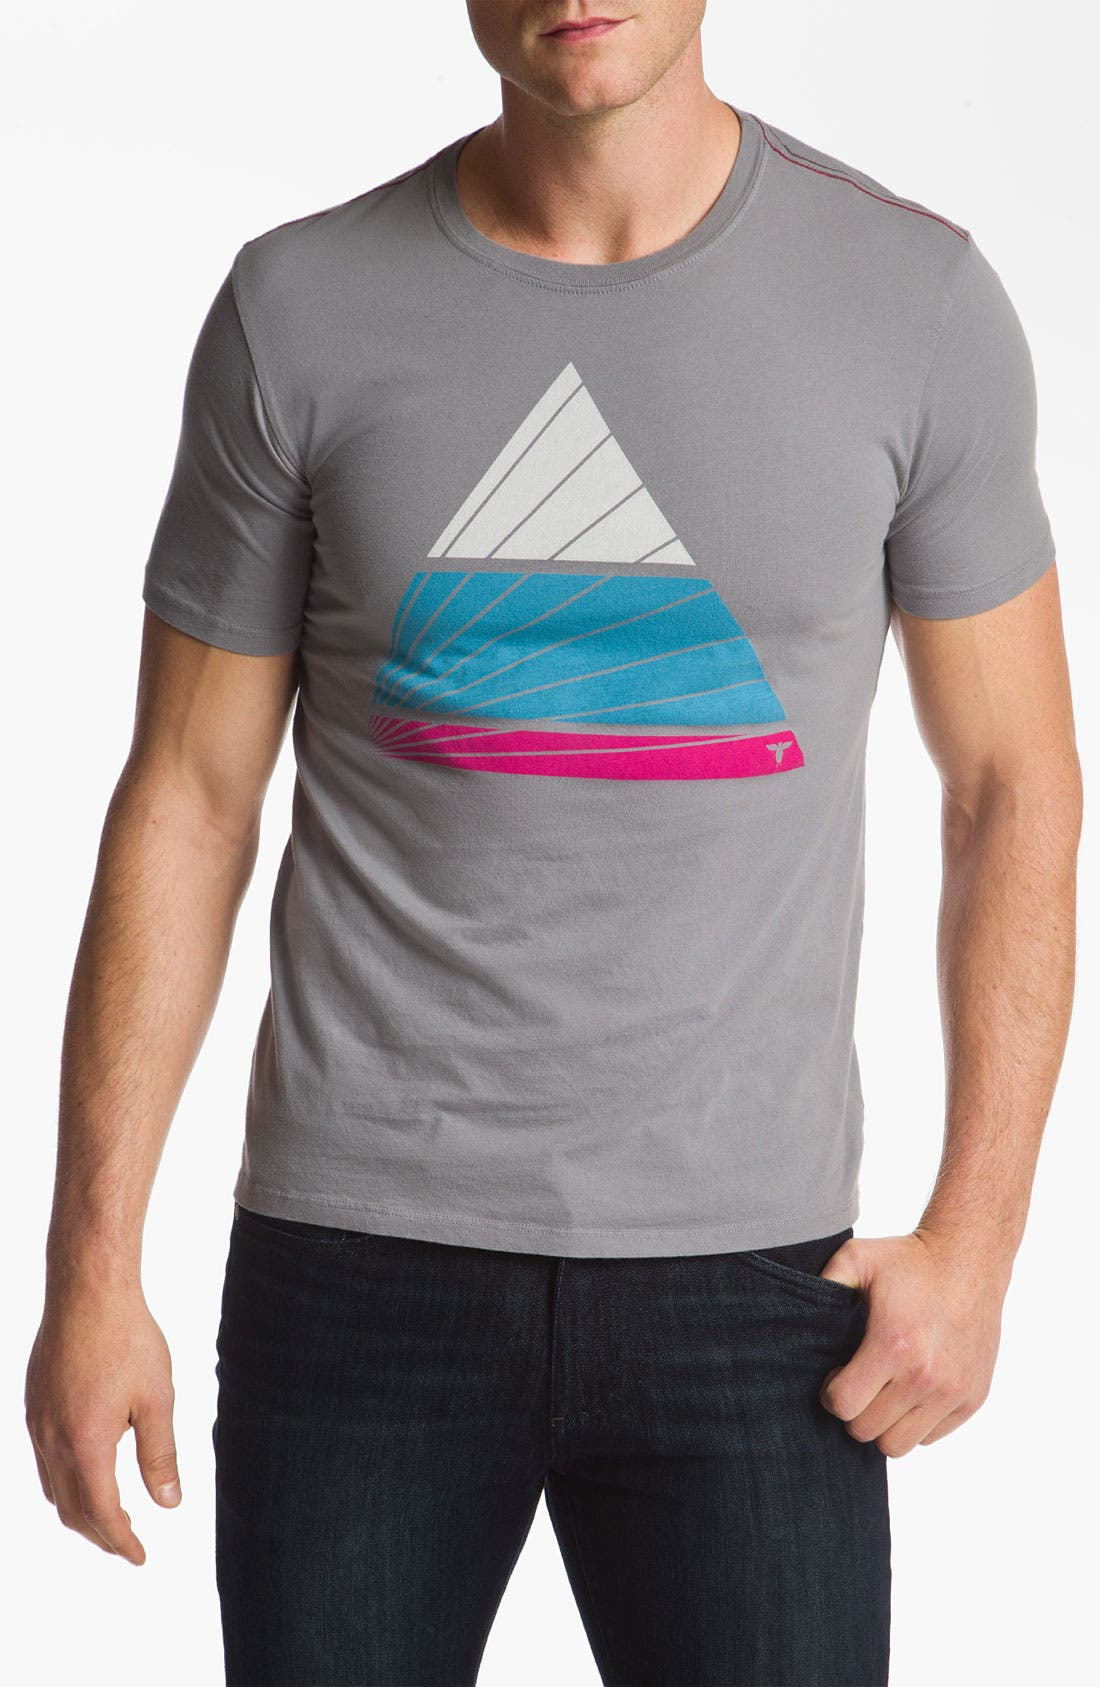 Alternate Image 1 Selected - Topo Ranch 'Wringer Wash Pyramid' Graphic T-Shirt